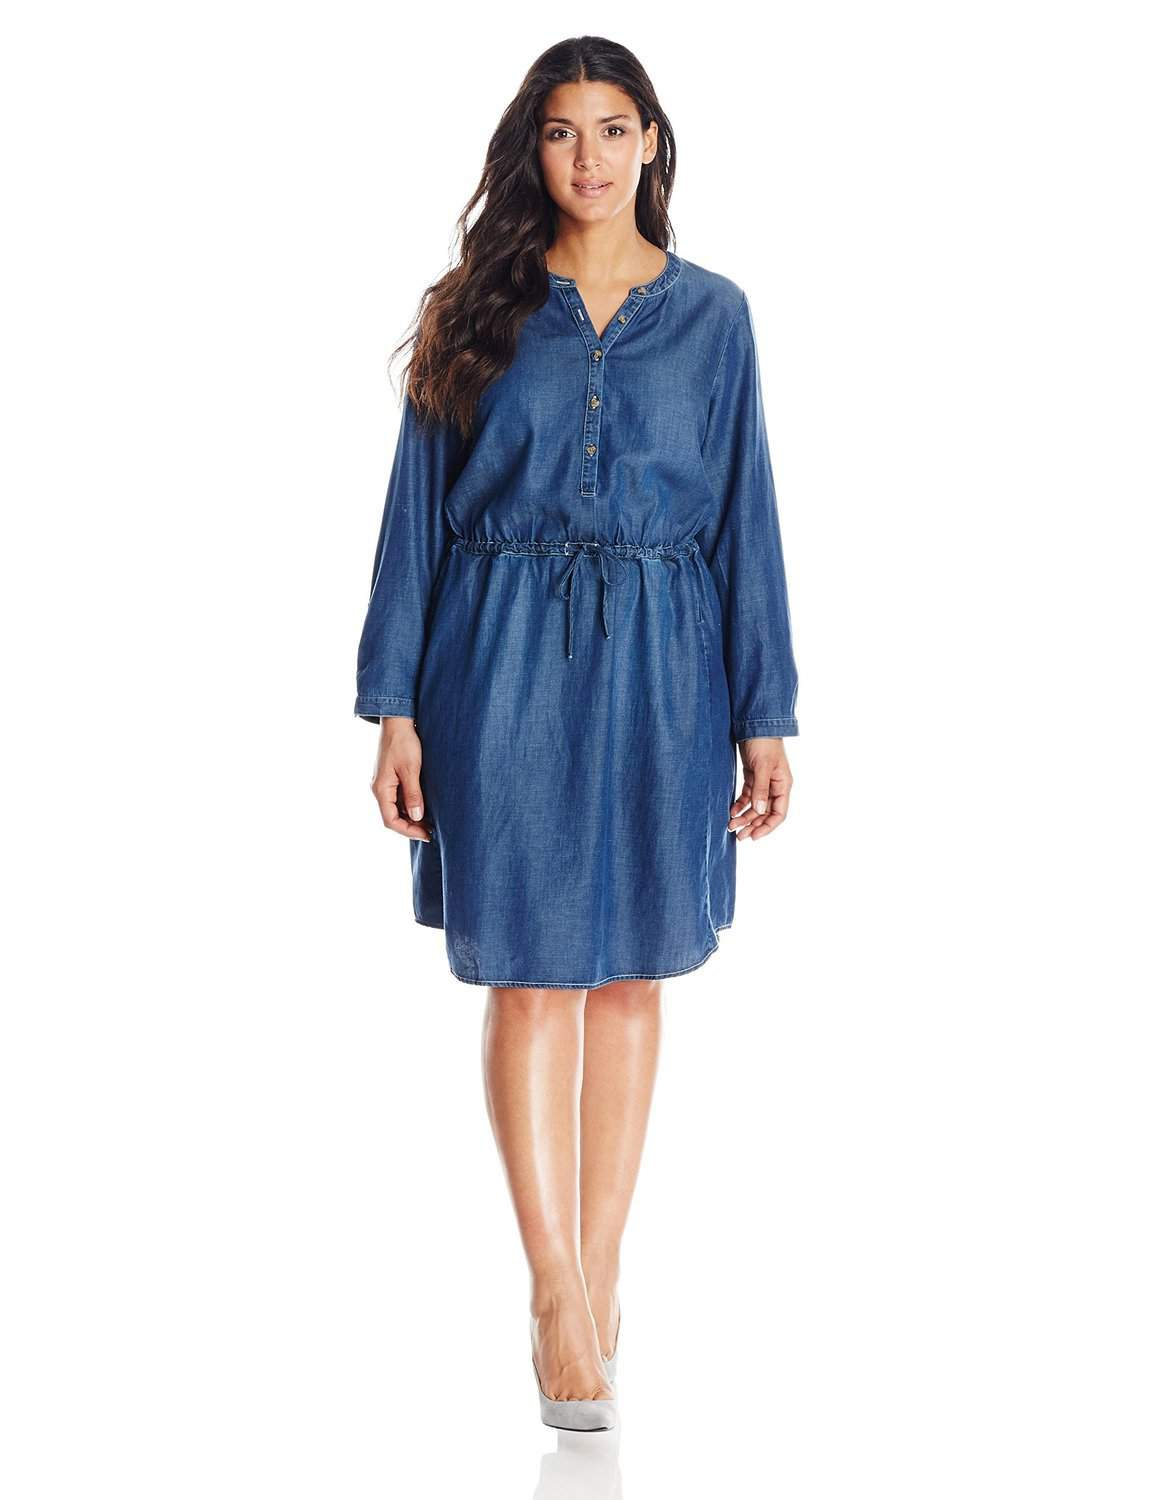 The Plus Size Denim Dress and 10 Picks for You